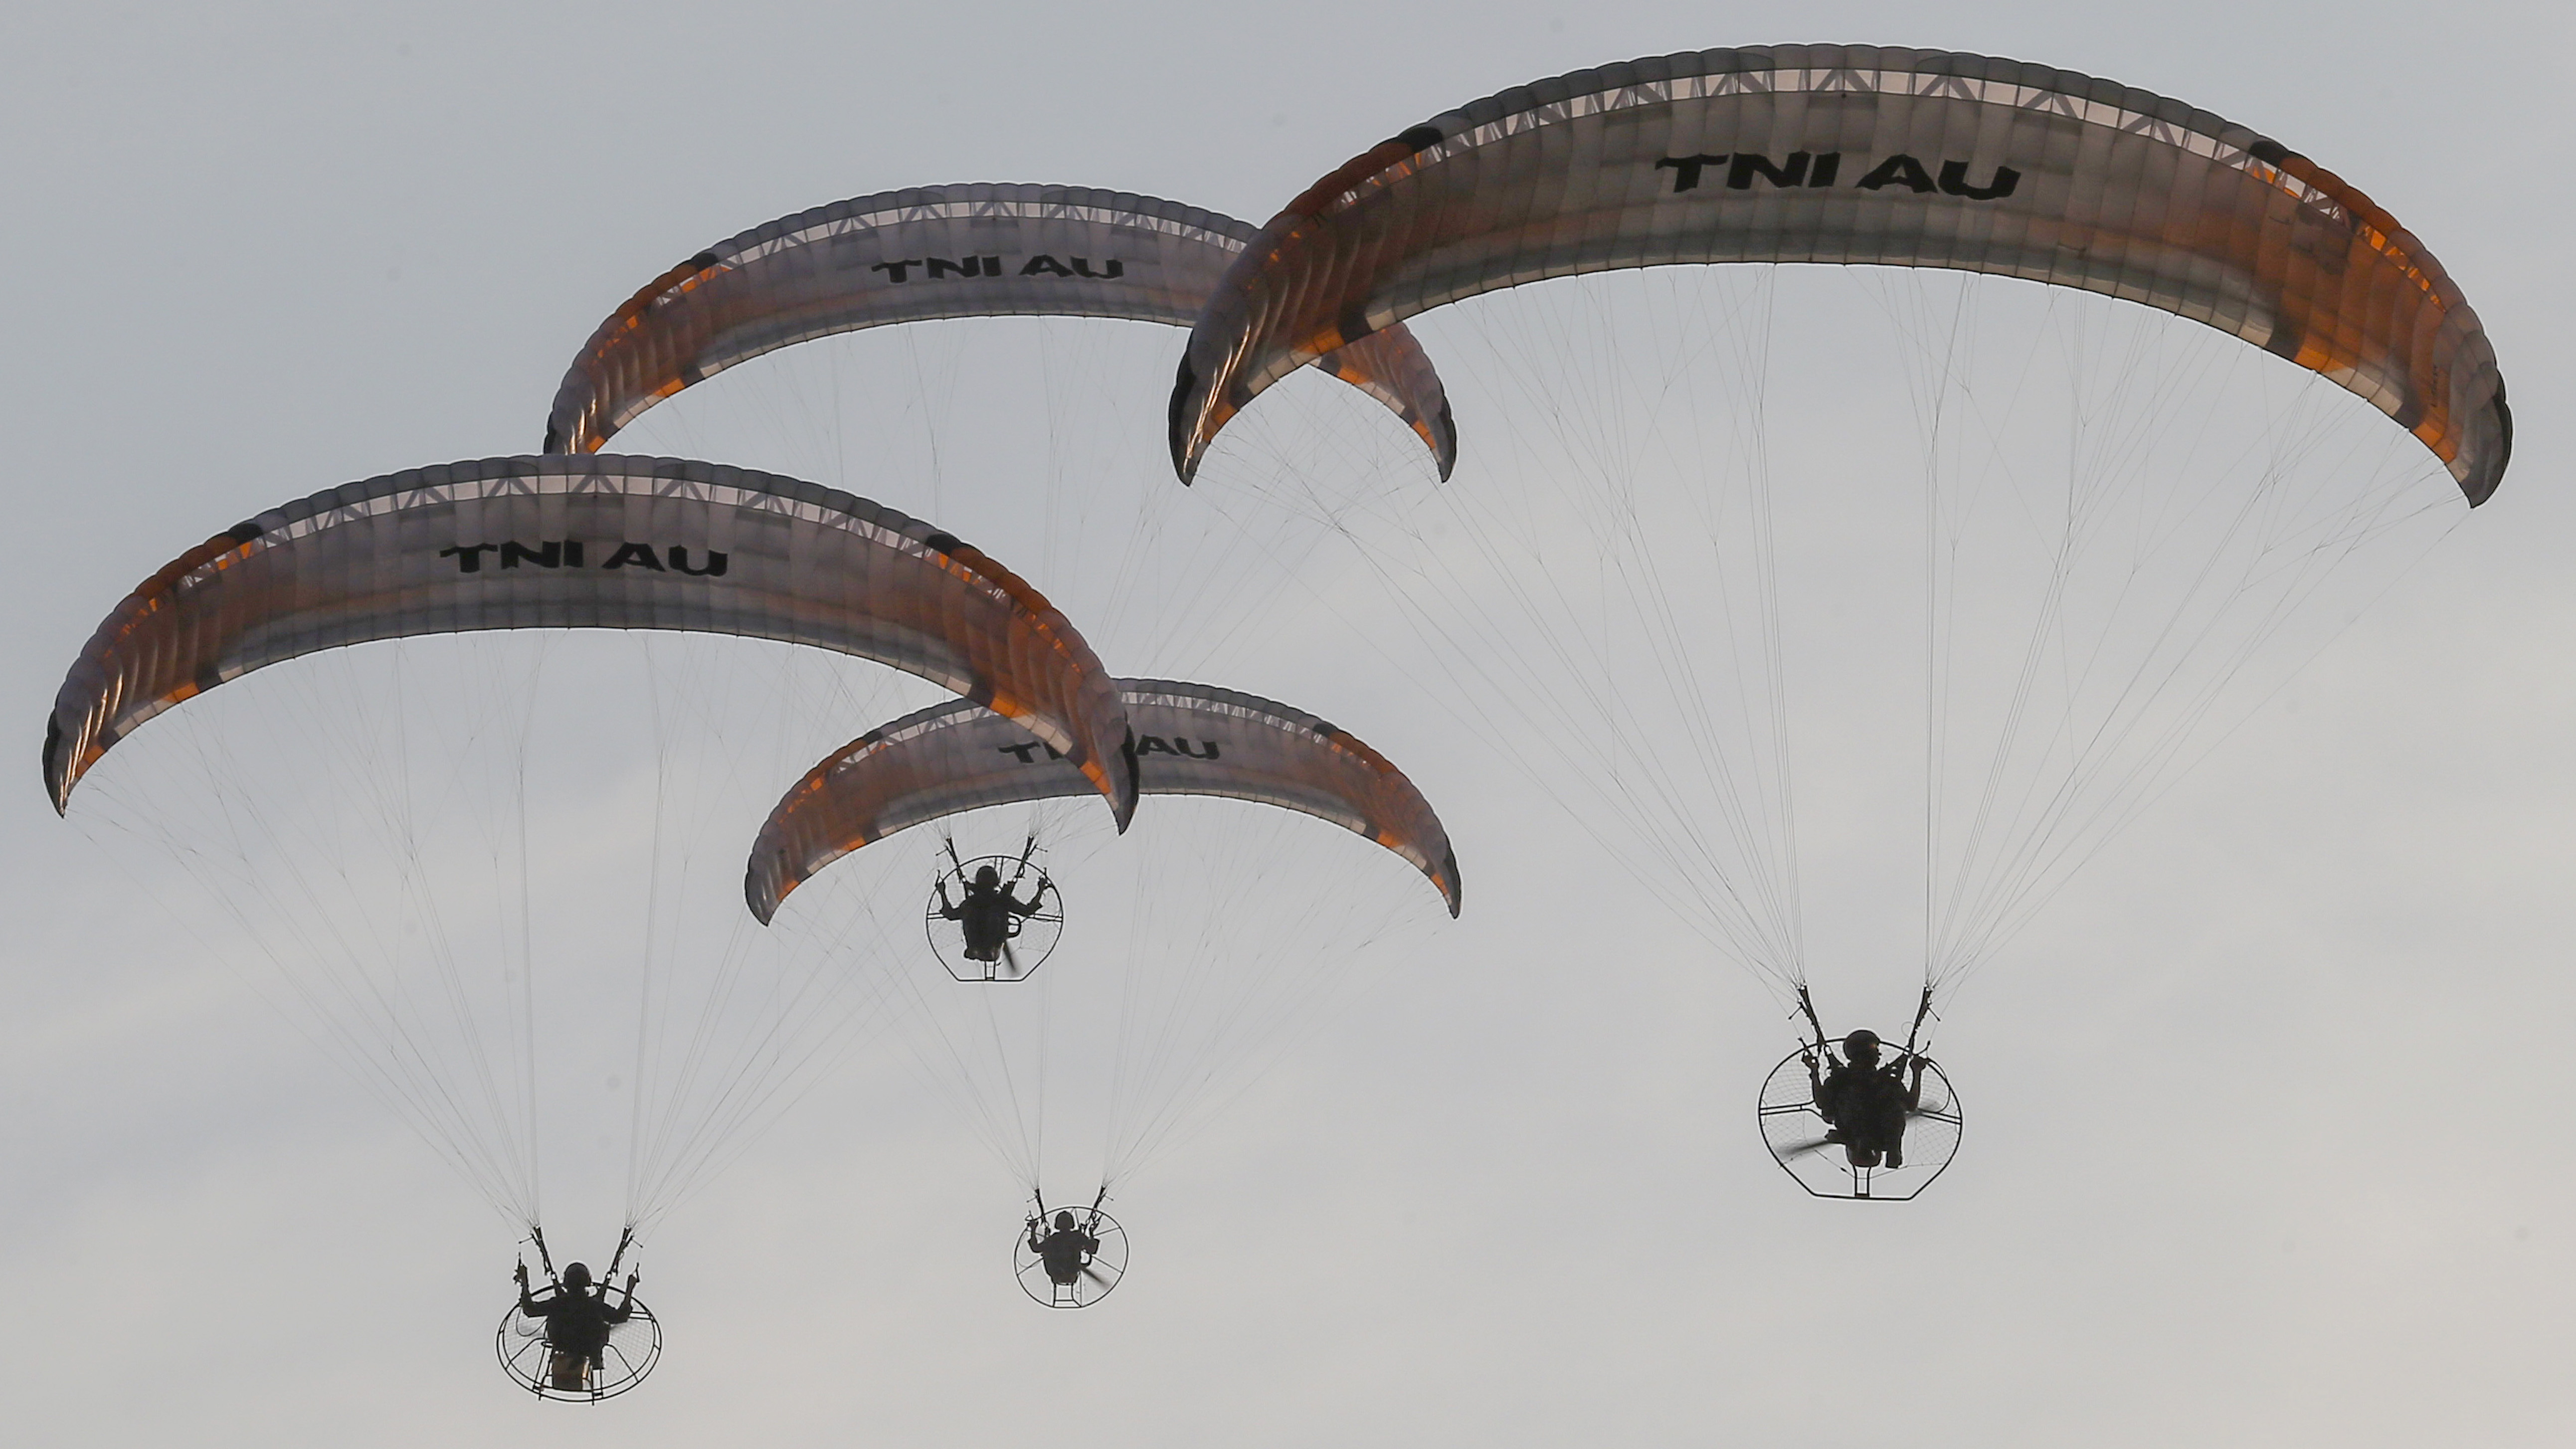 Skydivers perform during a parade marking the 74th anniversary of the Indonesian Armed Forces in Jakarta, Indonesia, Saturday, Oct. 5, 2019. (AP Photo/Tatan Syuflana)